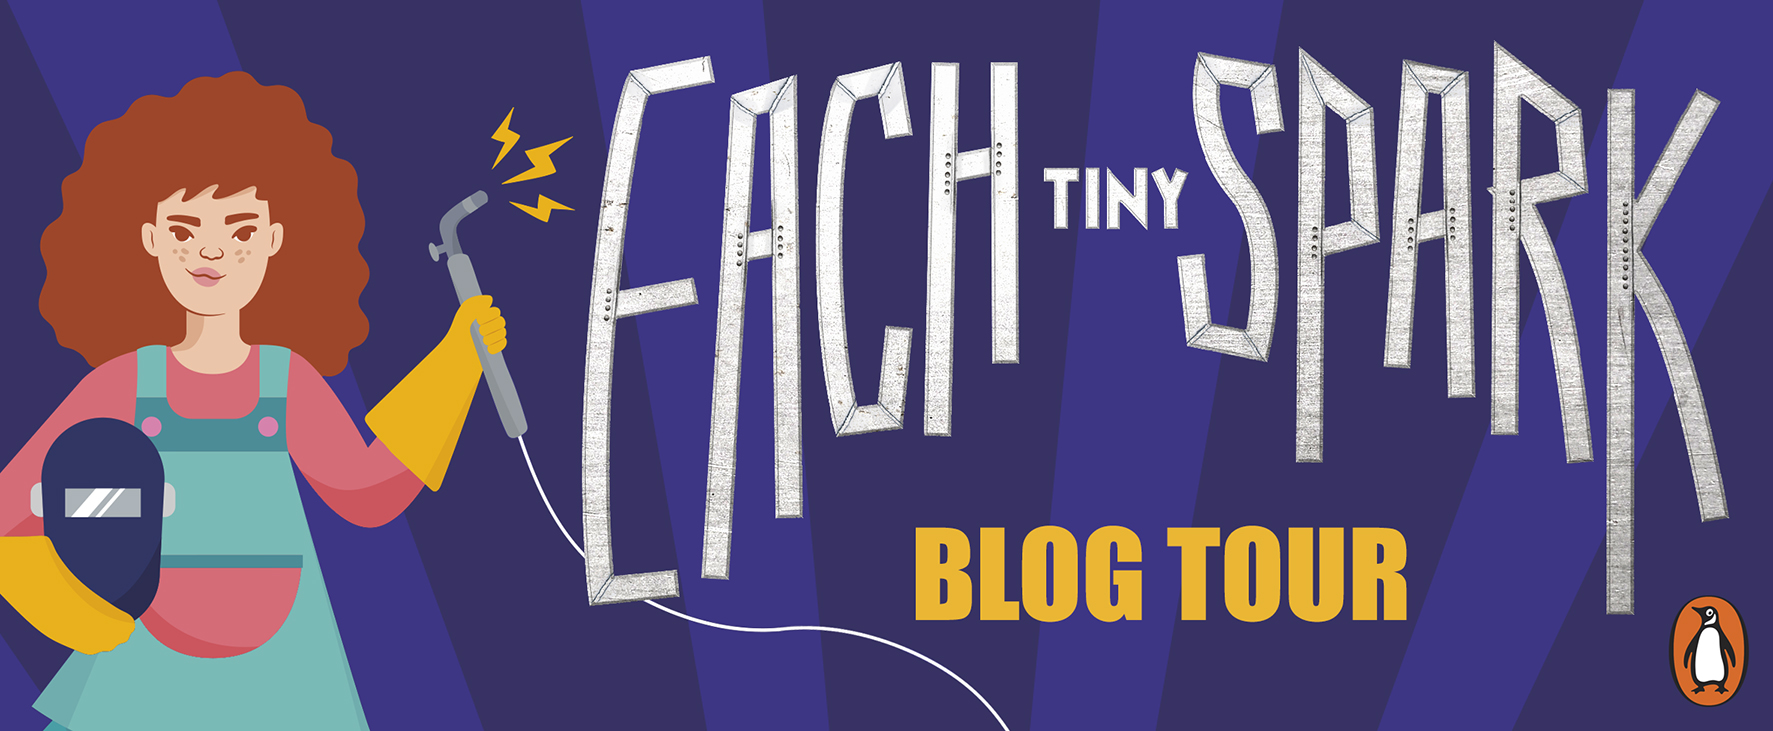 Blog Tour: Each Tiny Spark by Pablo Cartoya (featuring 10 neurodivergent middle grade books!)